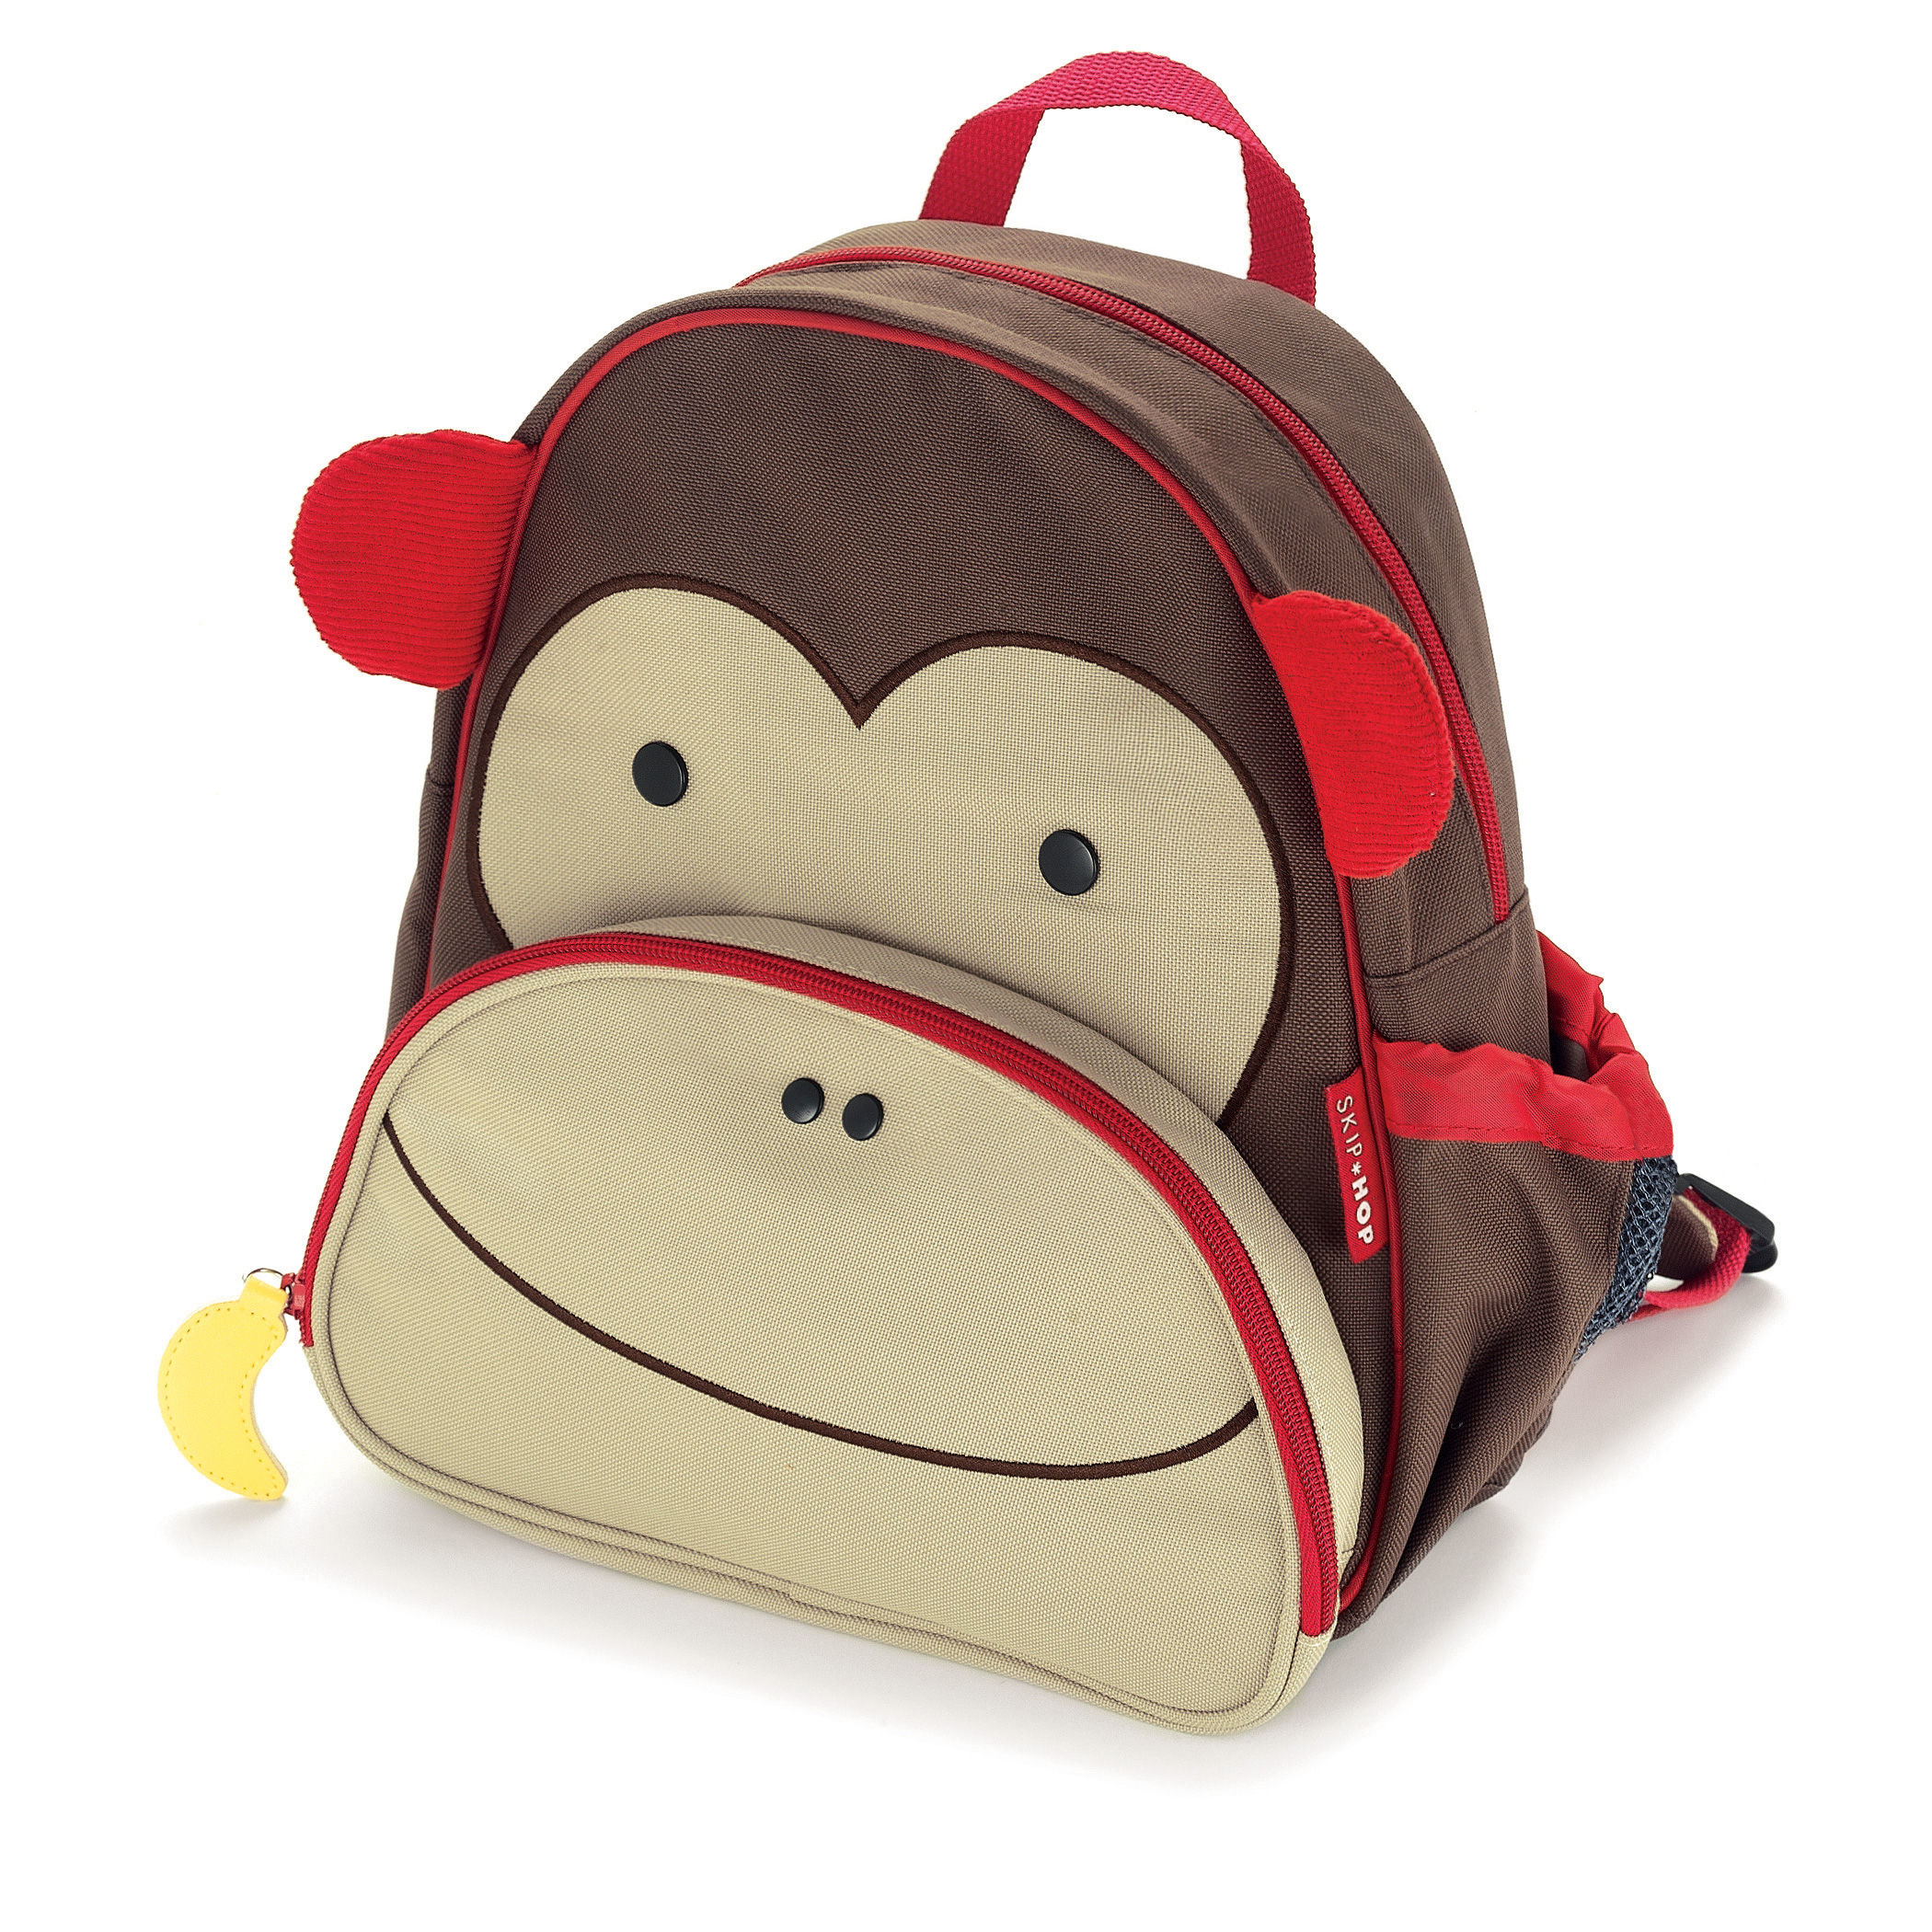 12 Inch Zoo Pack Little Kid Backpack